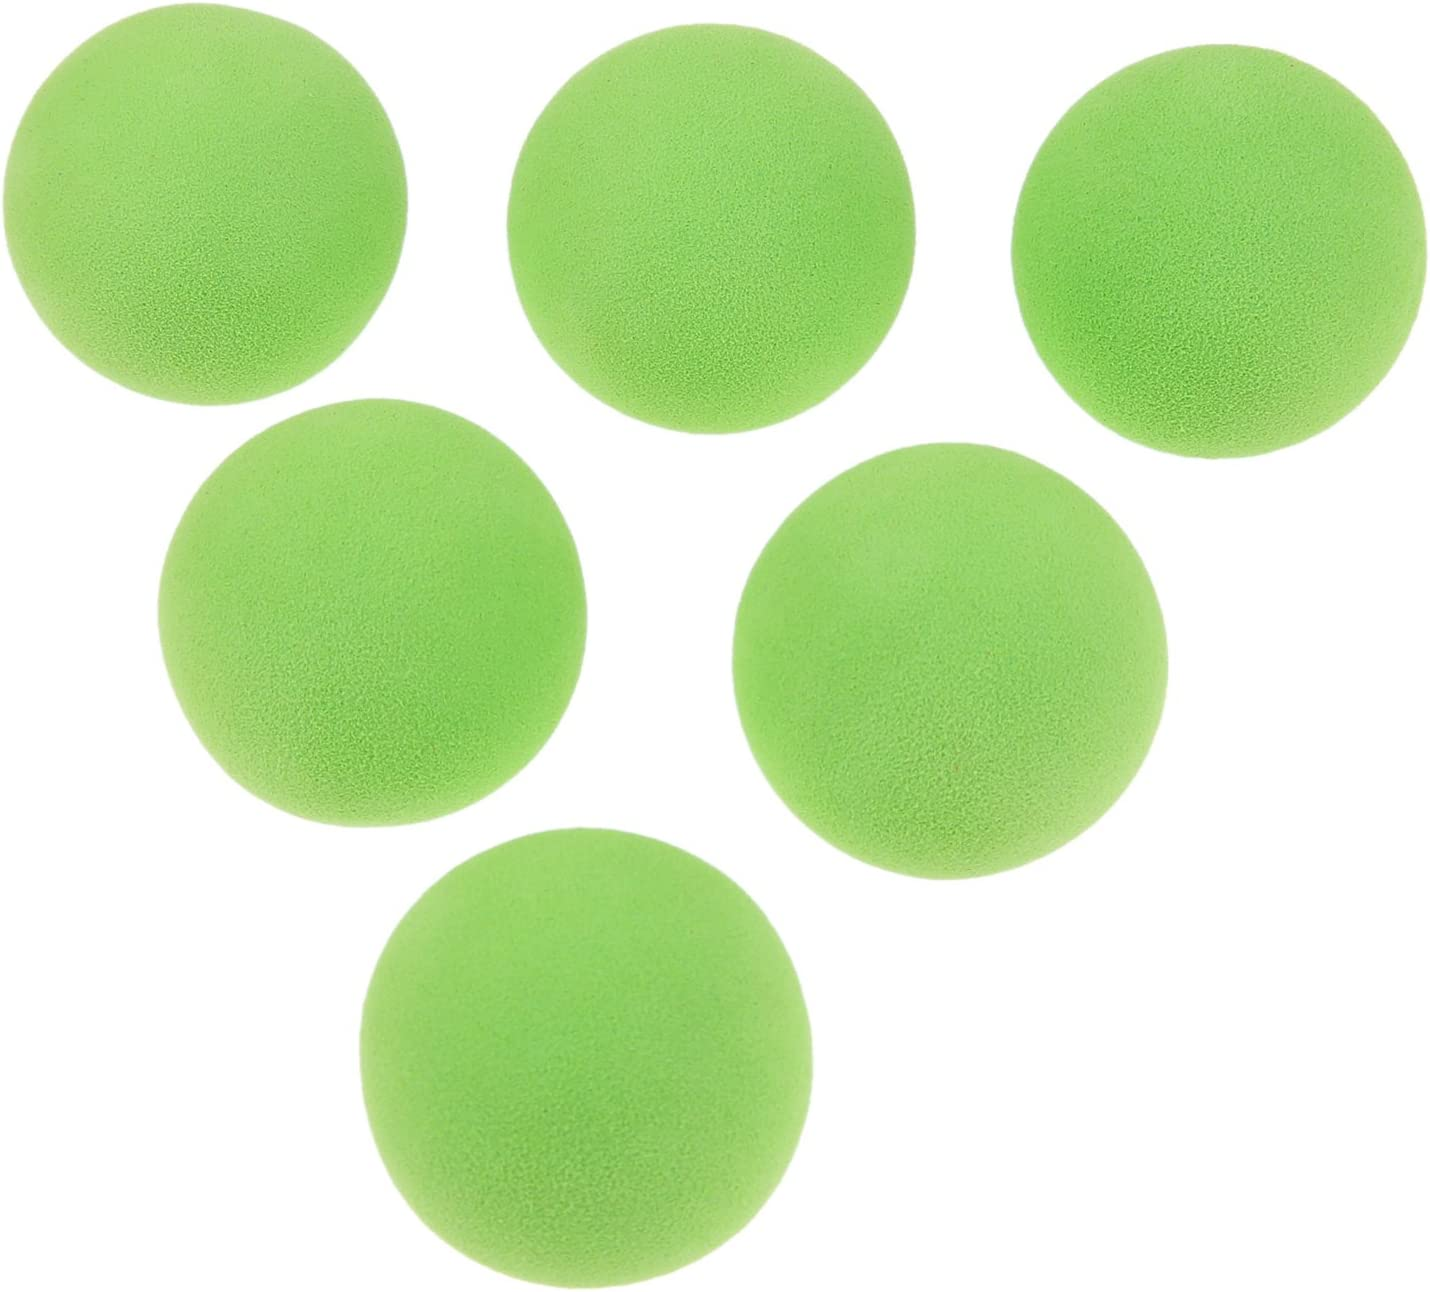 MUXSAM 20pcs Soft Foam Golf Balls – Golf Swing Training Aids for Kids or Adults, Indoor Putting Green, Backyard Outdoor Practice Equipment, 7 Colors for Choice